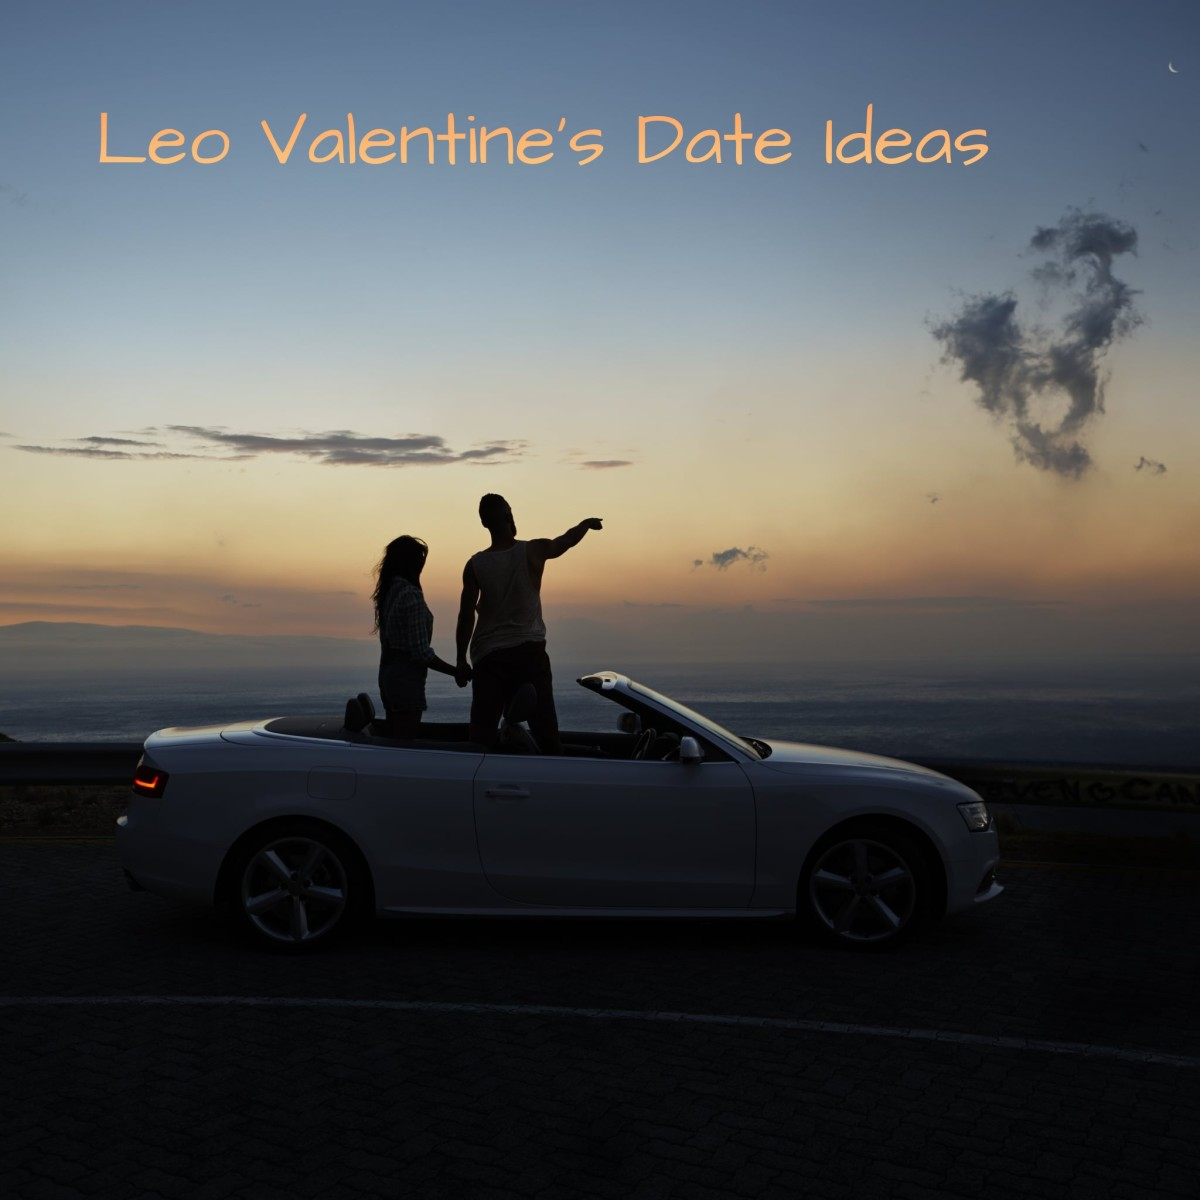 Leo needs something showy, electric, and exciting. (1) Go to a Valentine's Day party together. (2) Go out dancing. (3) Go to a drive-in movie theater. (4) Go to a trendy restaurant. (5) Go to a play, ballet, or other show.